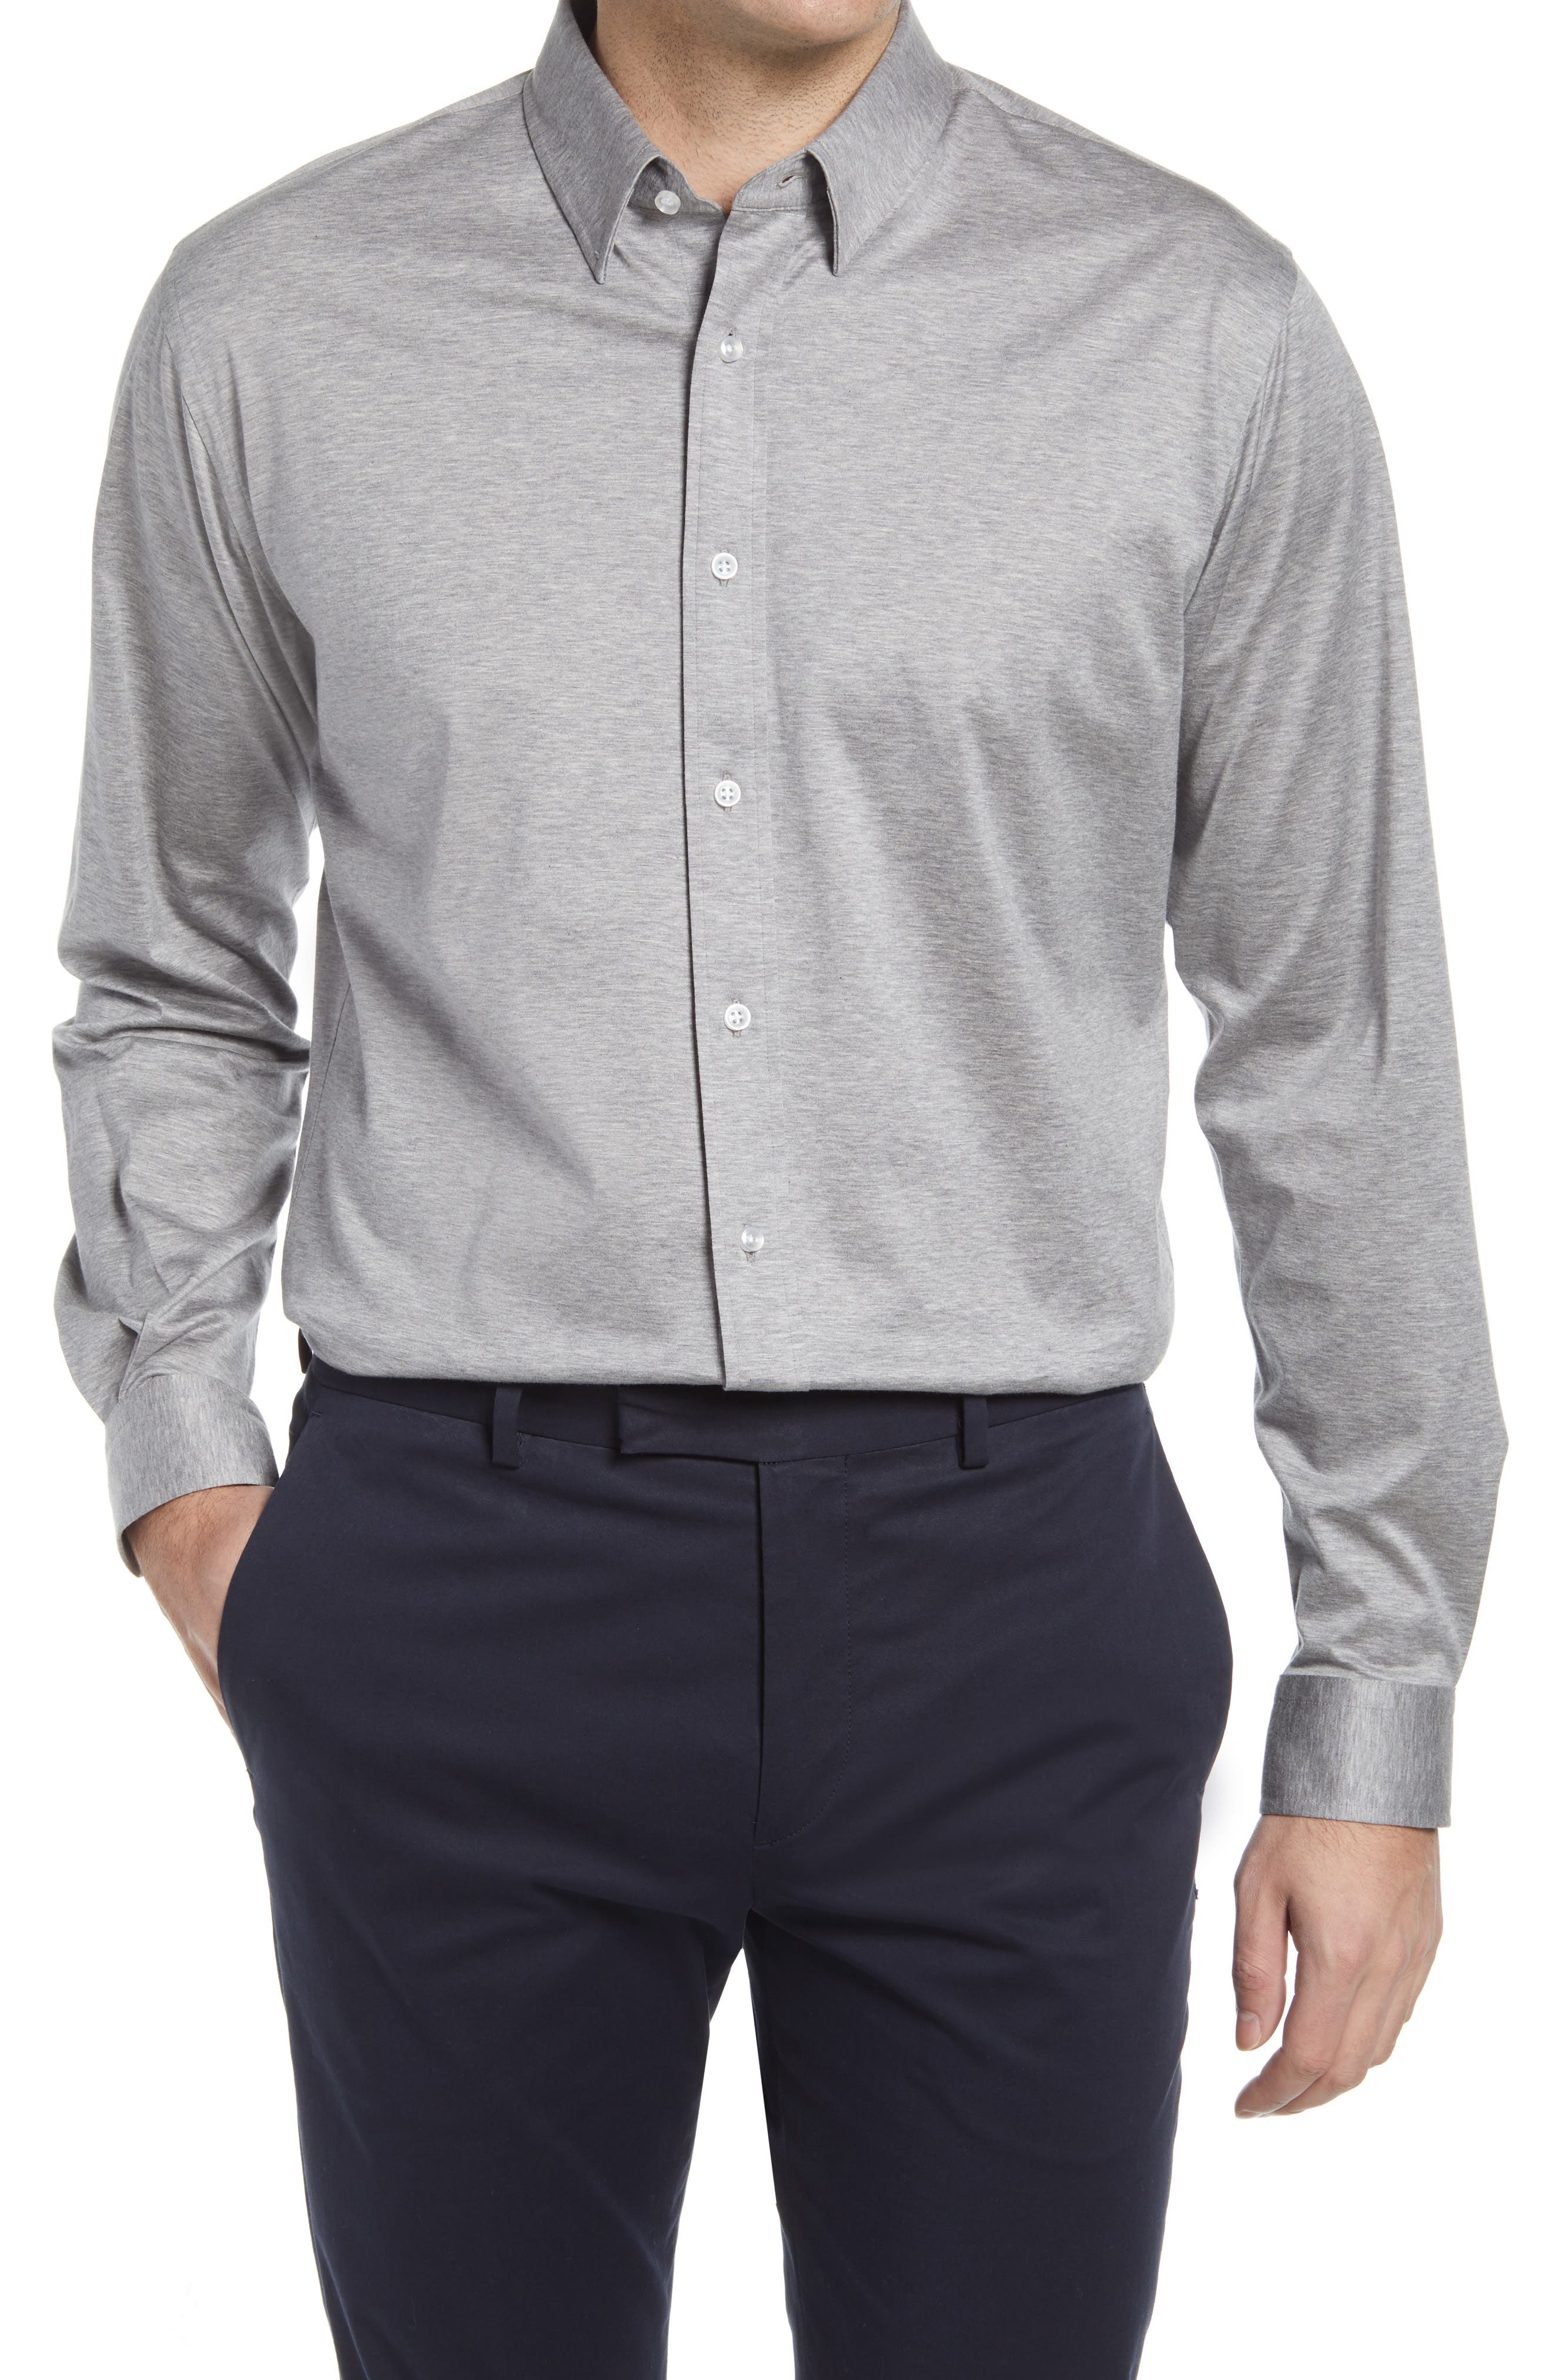 The Zoom Tailored Fit Button-Up Shirt